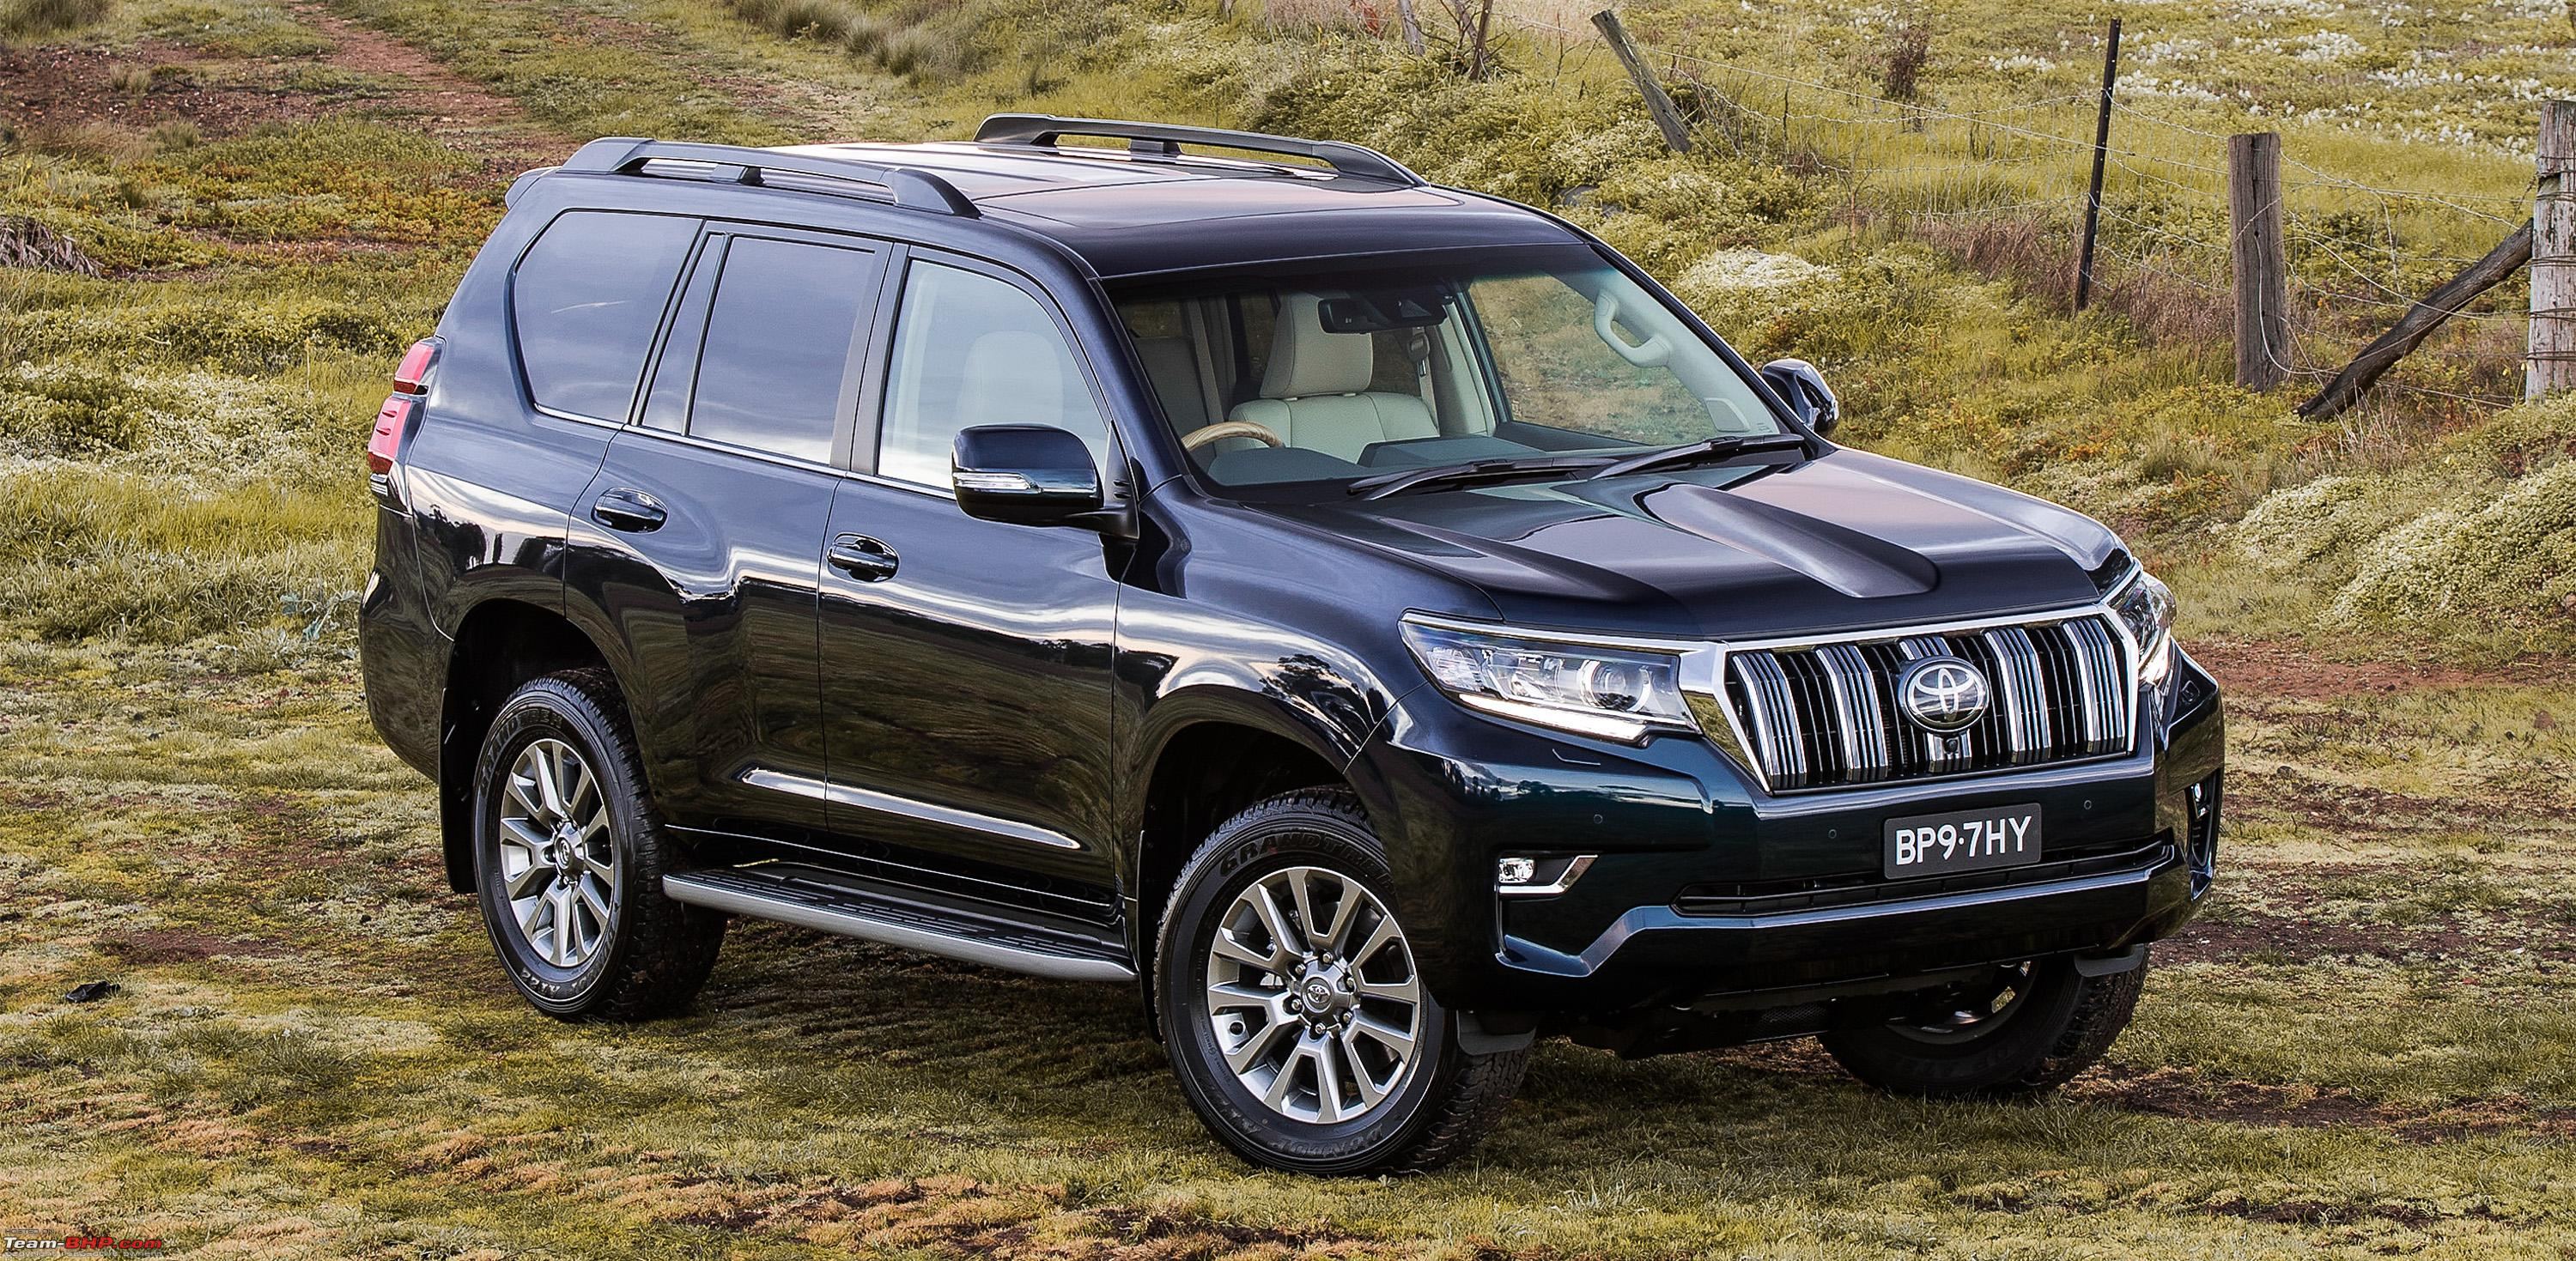 The 2018 toyota prado out 2 jpg